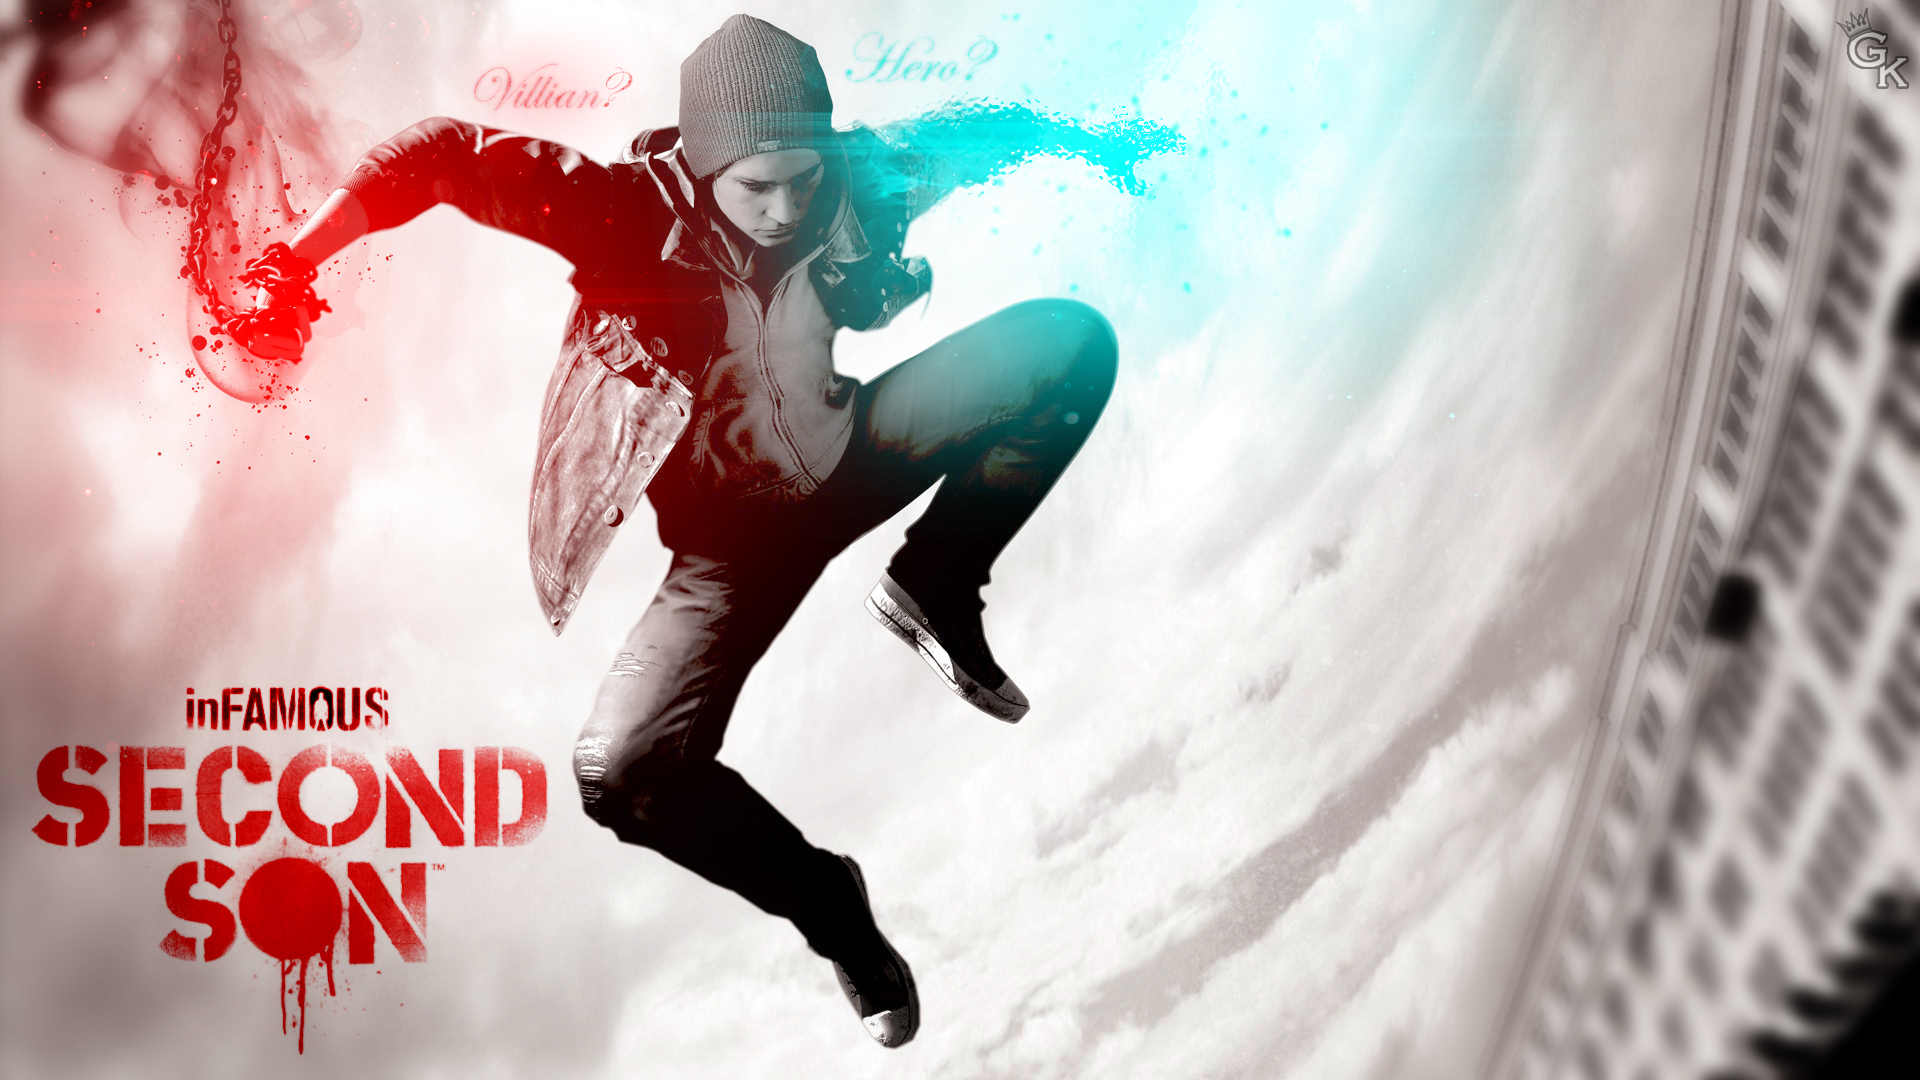 Infamous Second Son Evil Wallpaper - 1920 x 1080 by Mac117 on ...